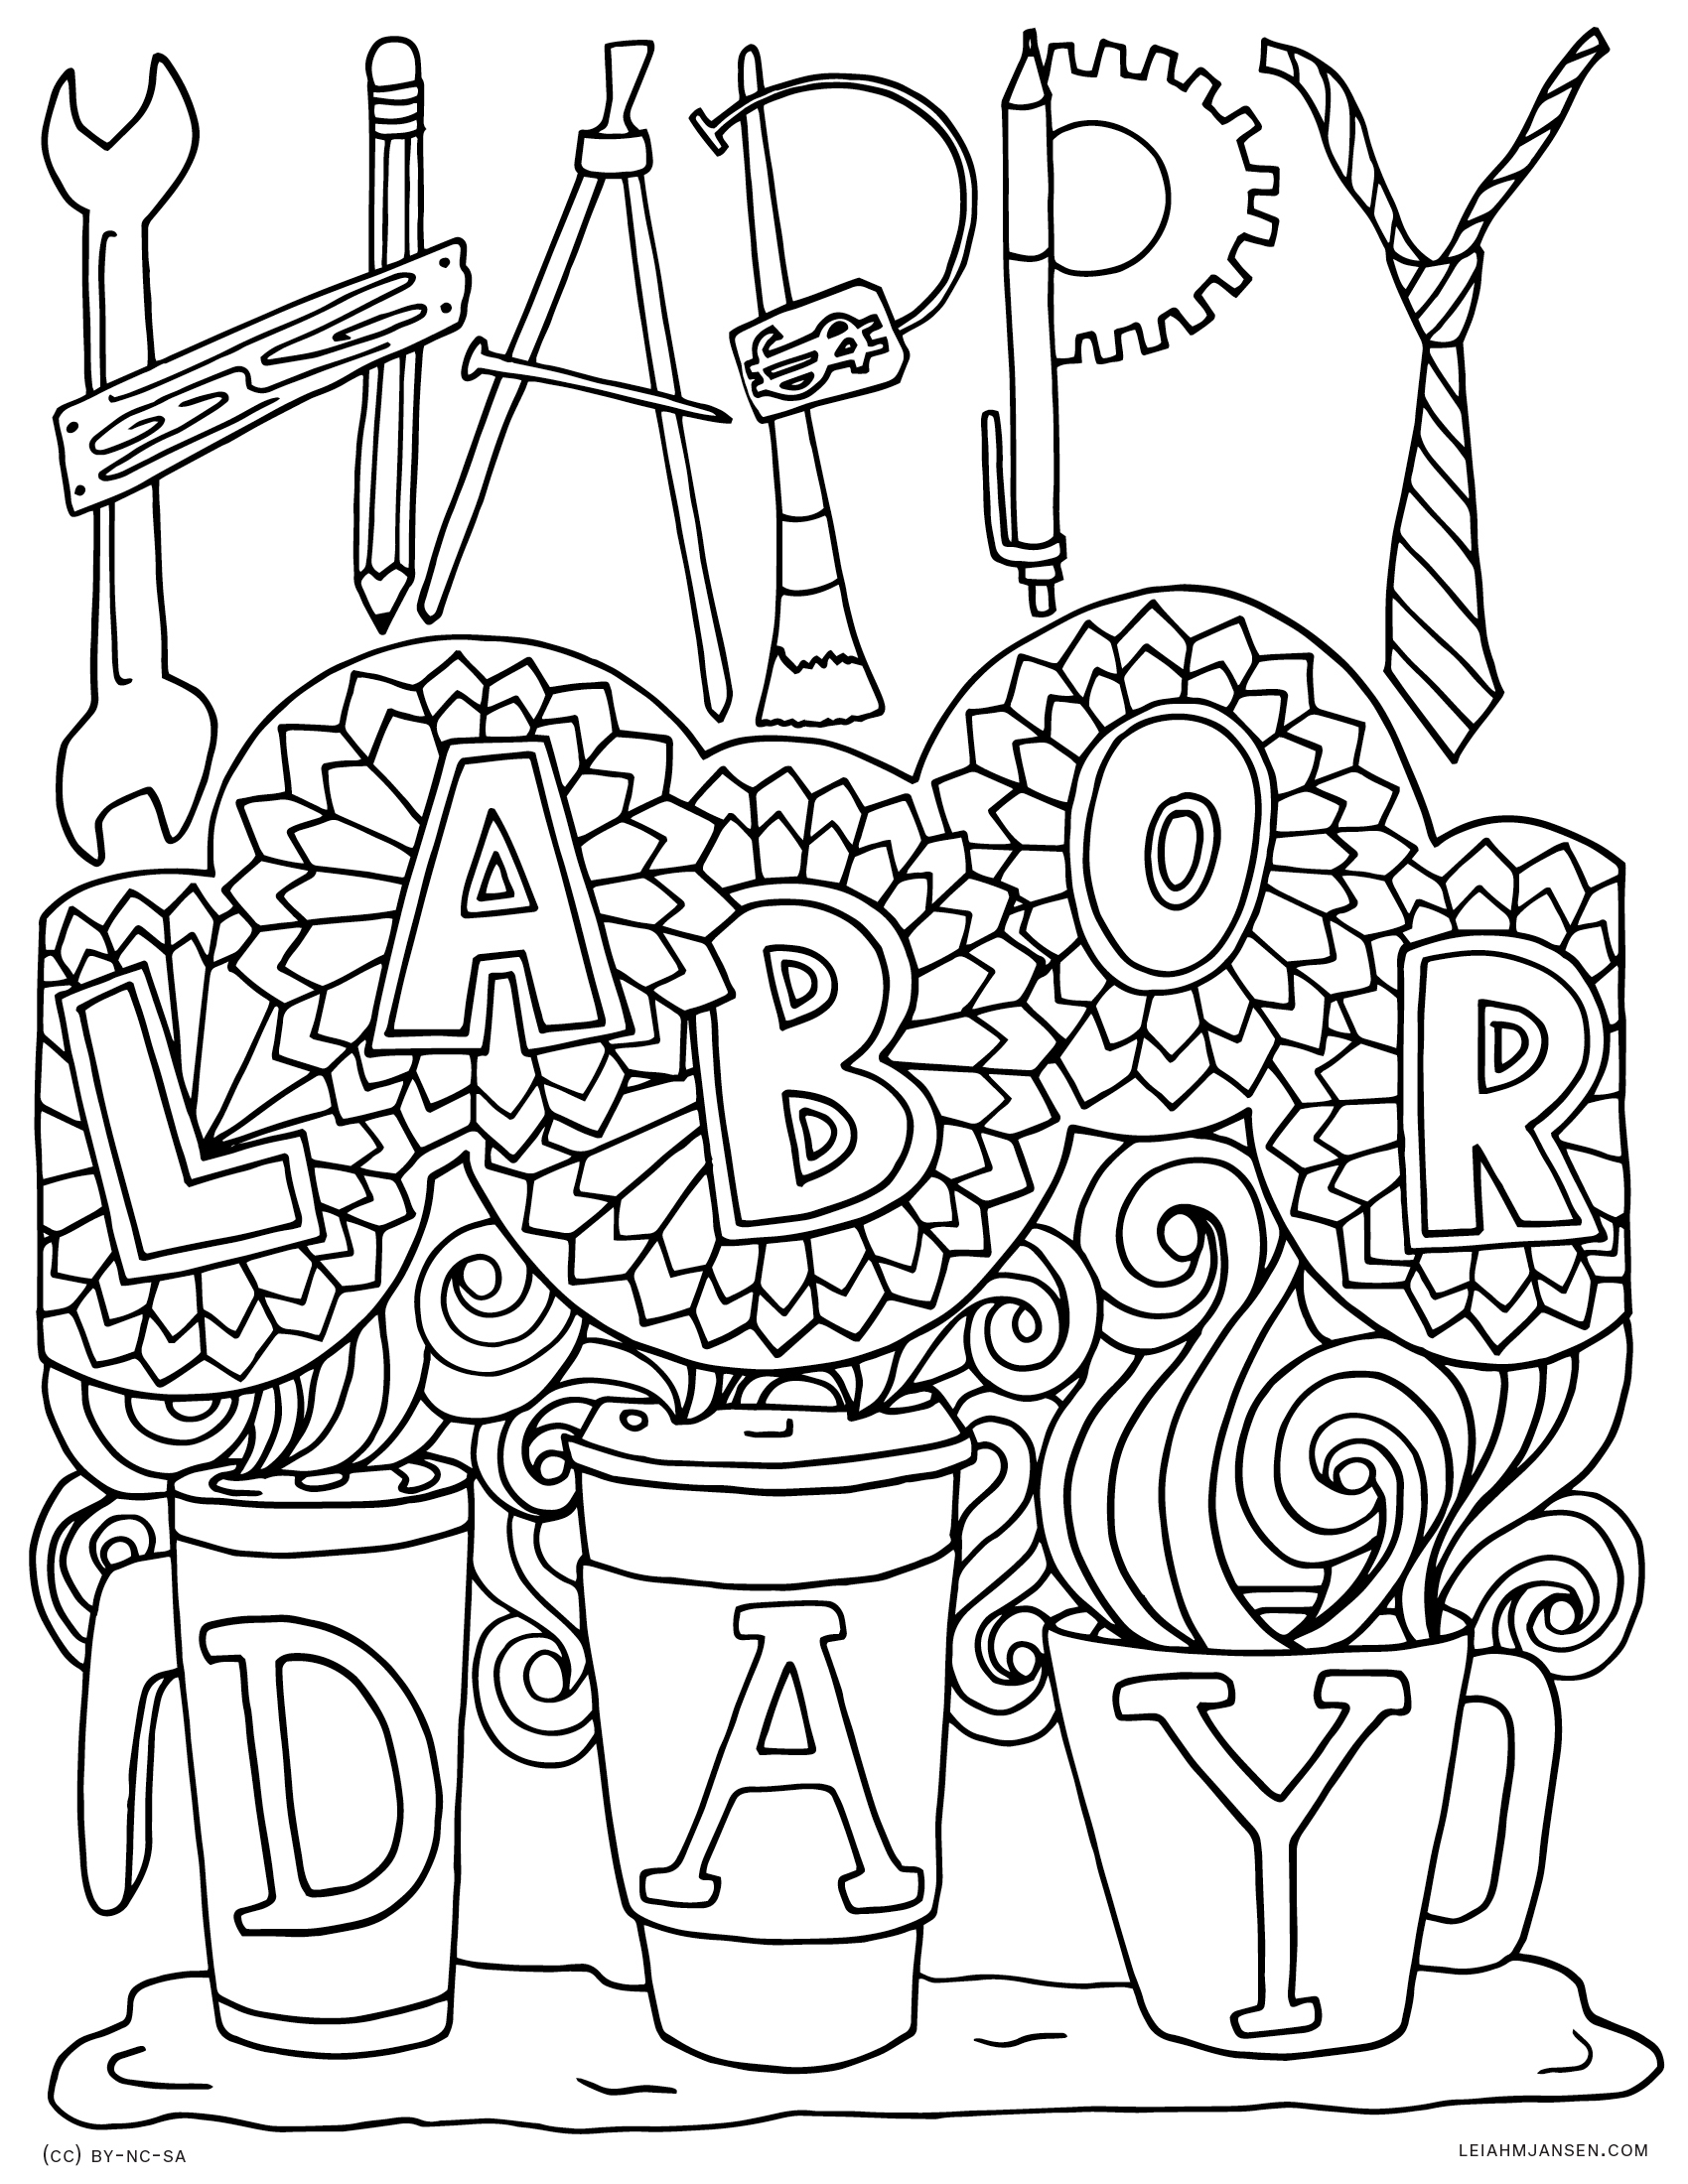 free printable labor day pictures happy labor day holiday worksheets coloring pages for day printable free labor pictures